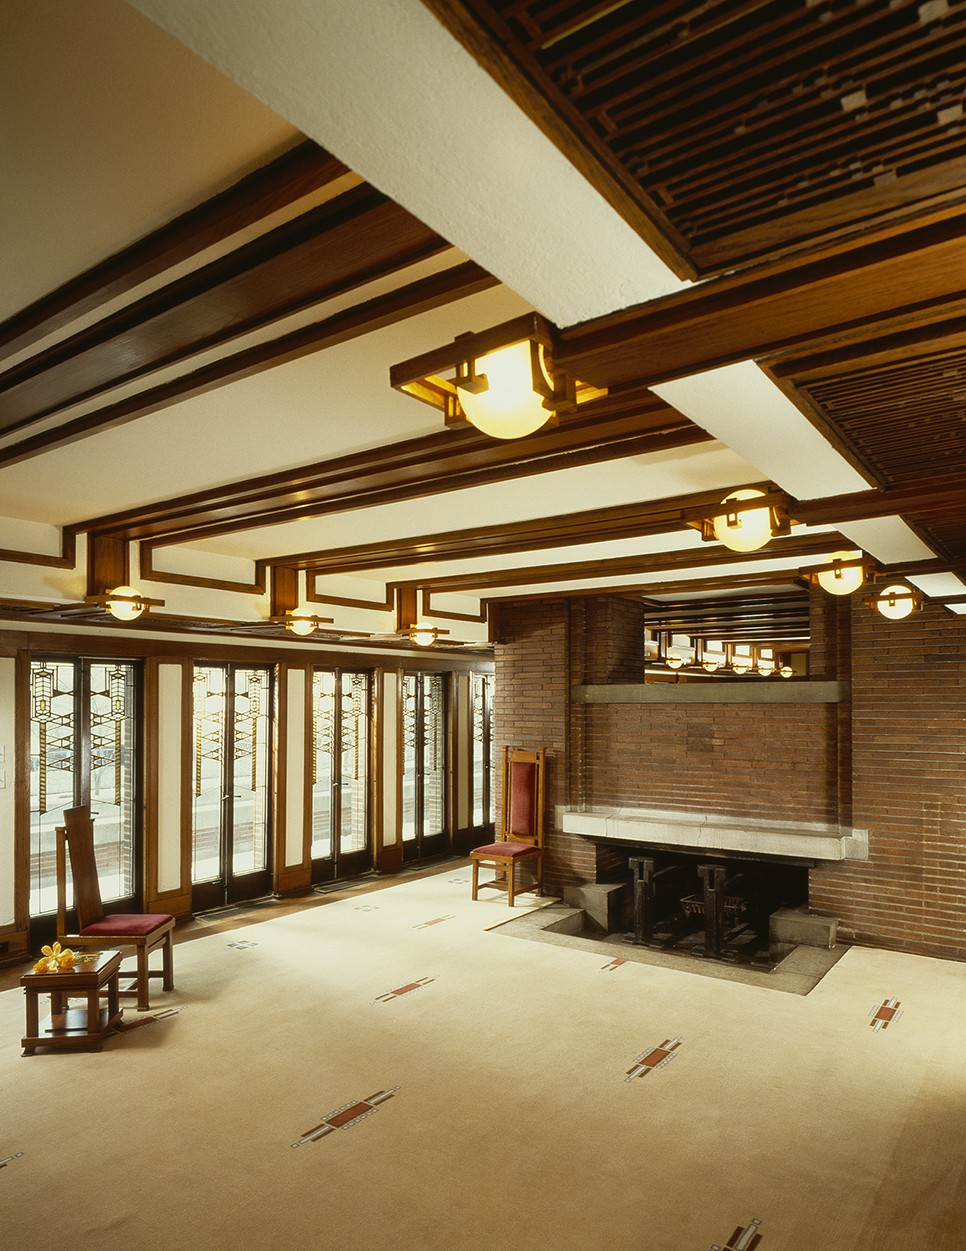 Frank lloyd wright architecture design visual - Frank lloyd wright architecture ...